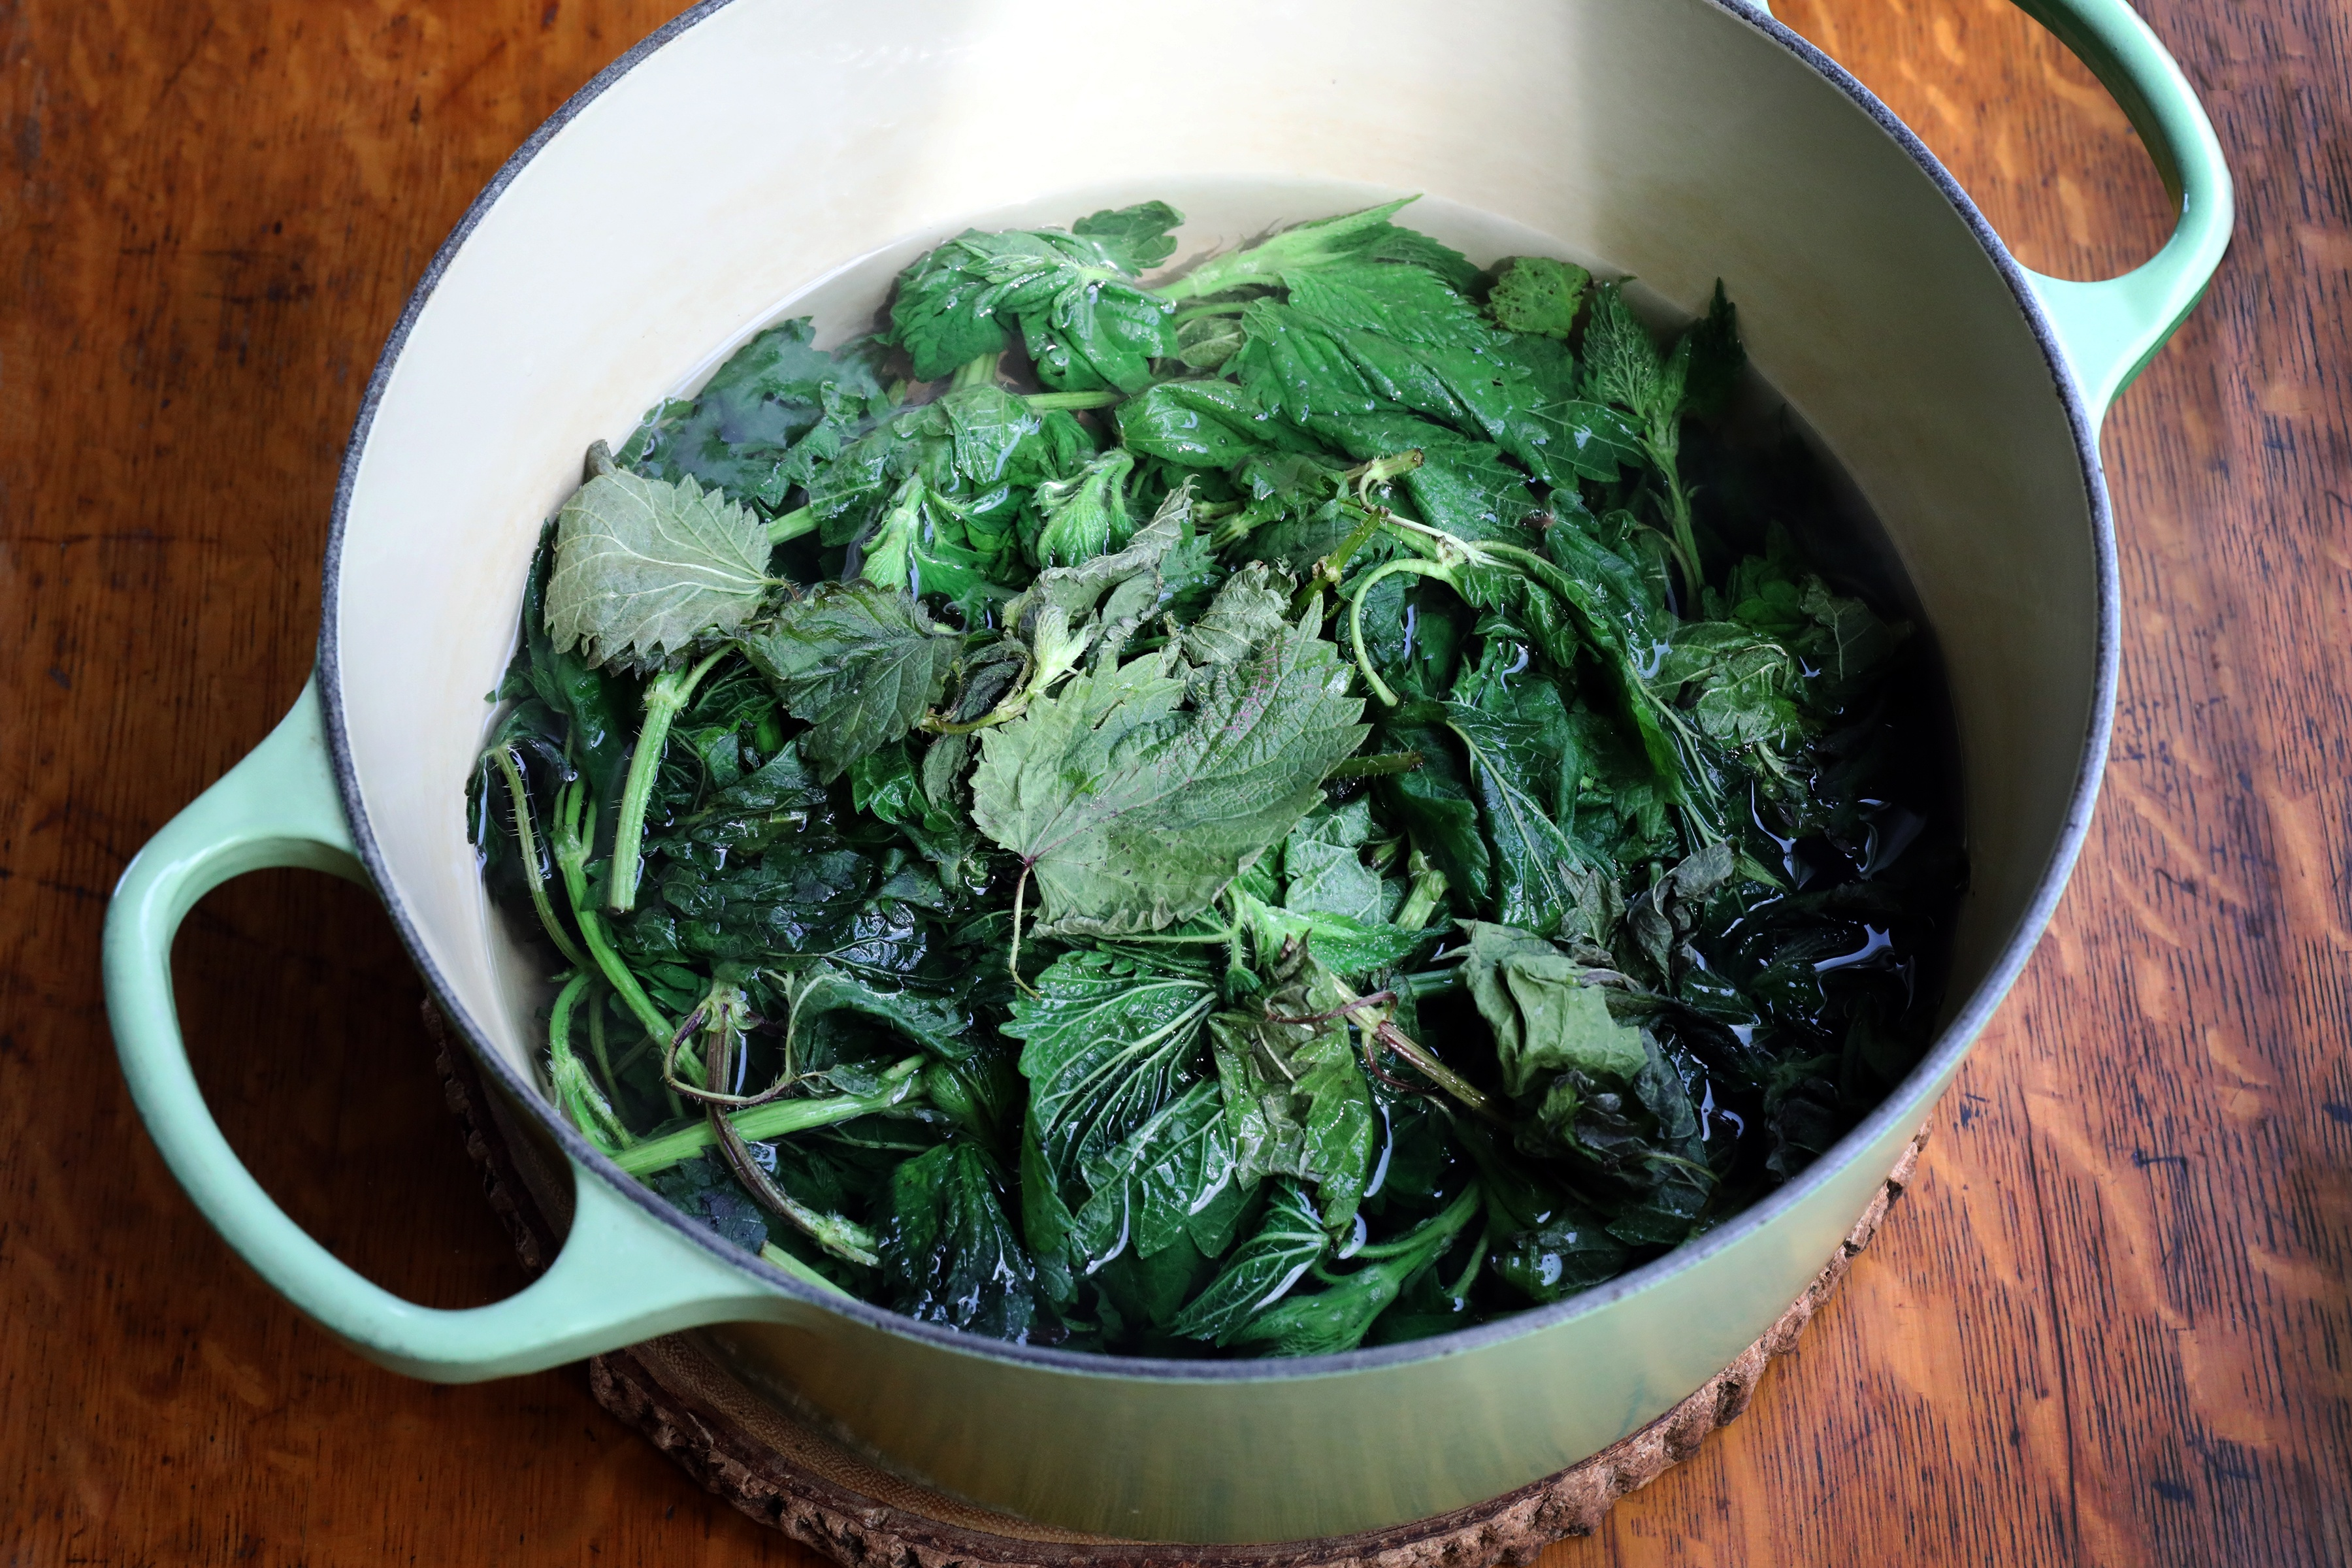 Pot soaking nettle leaf in hot water to blanch them